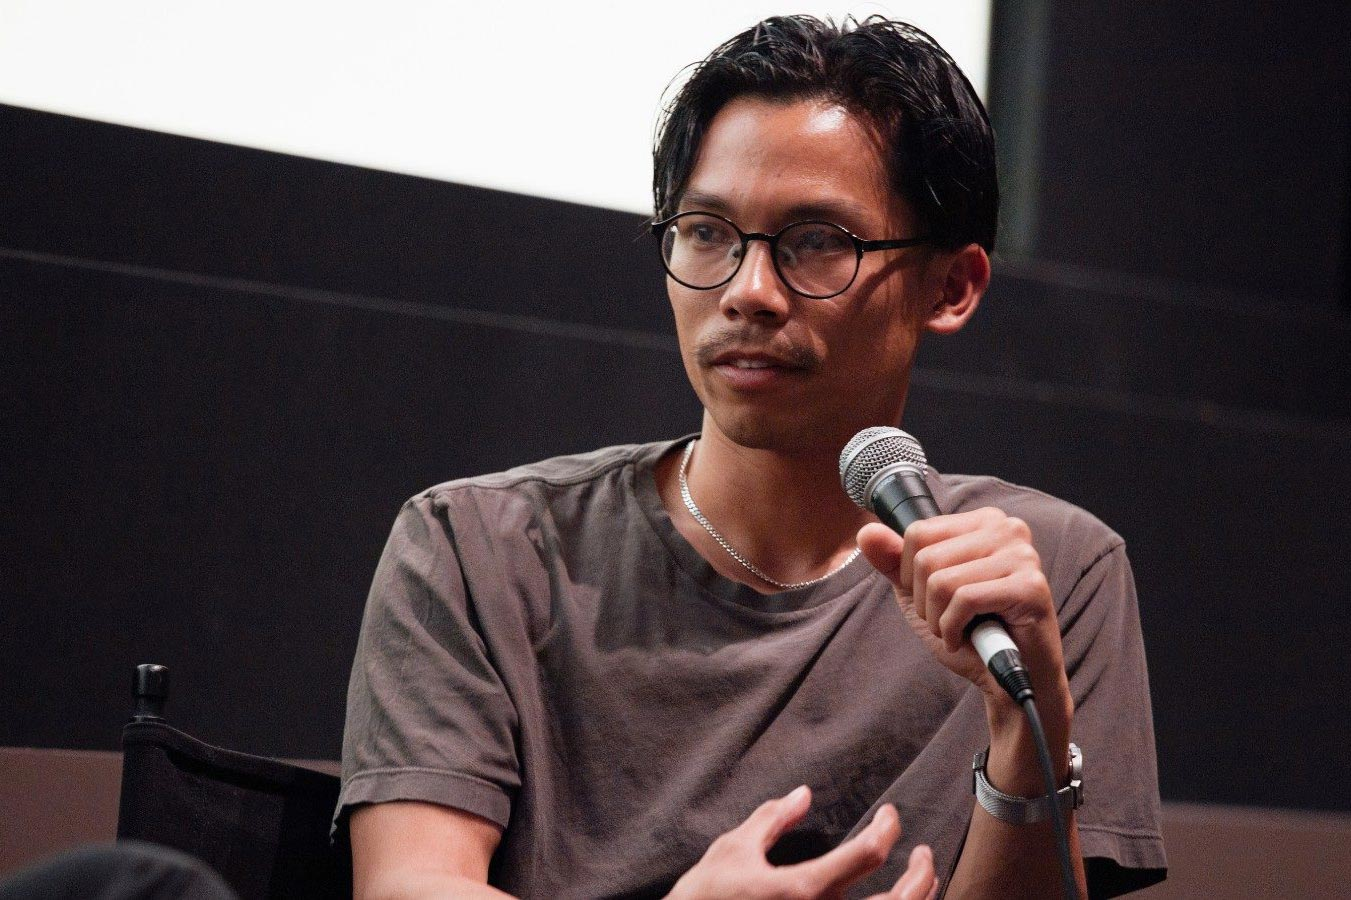 Miko Revereza holding a microphone and speaking at a Q&A in front of a movie theater screen.